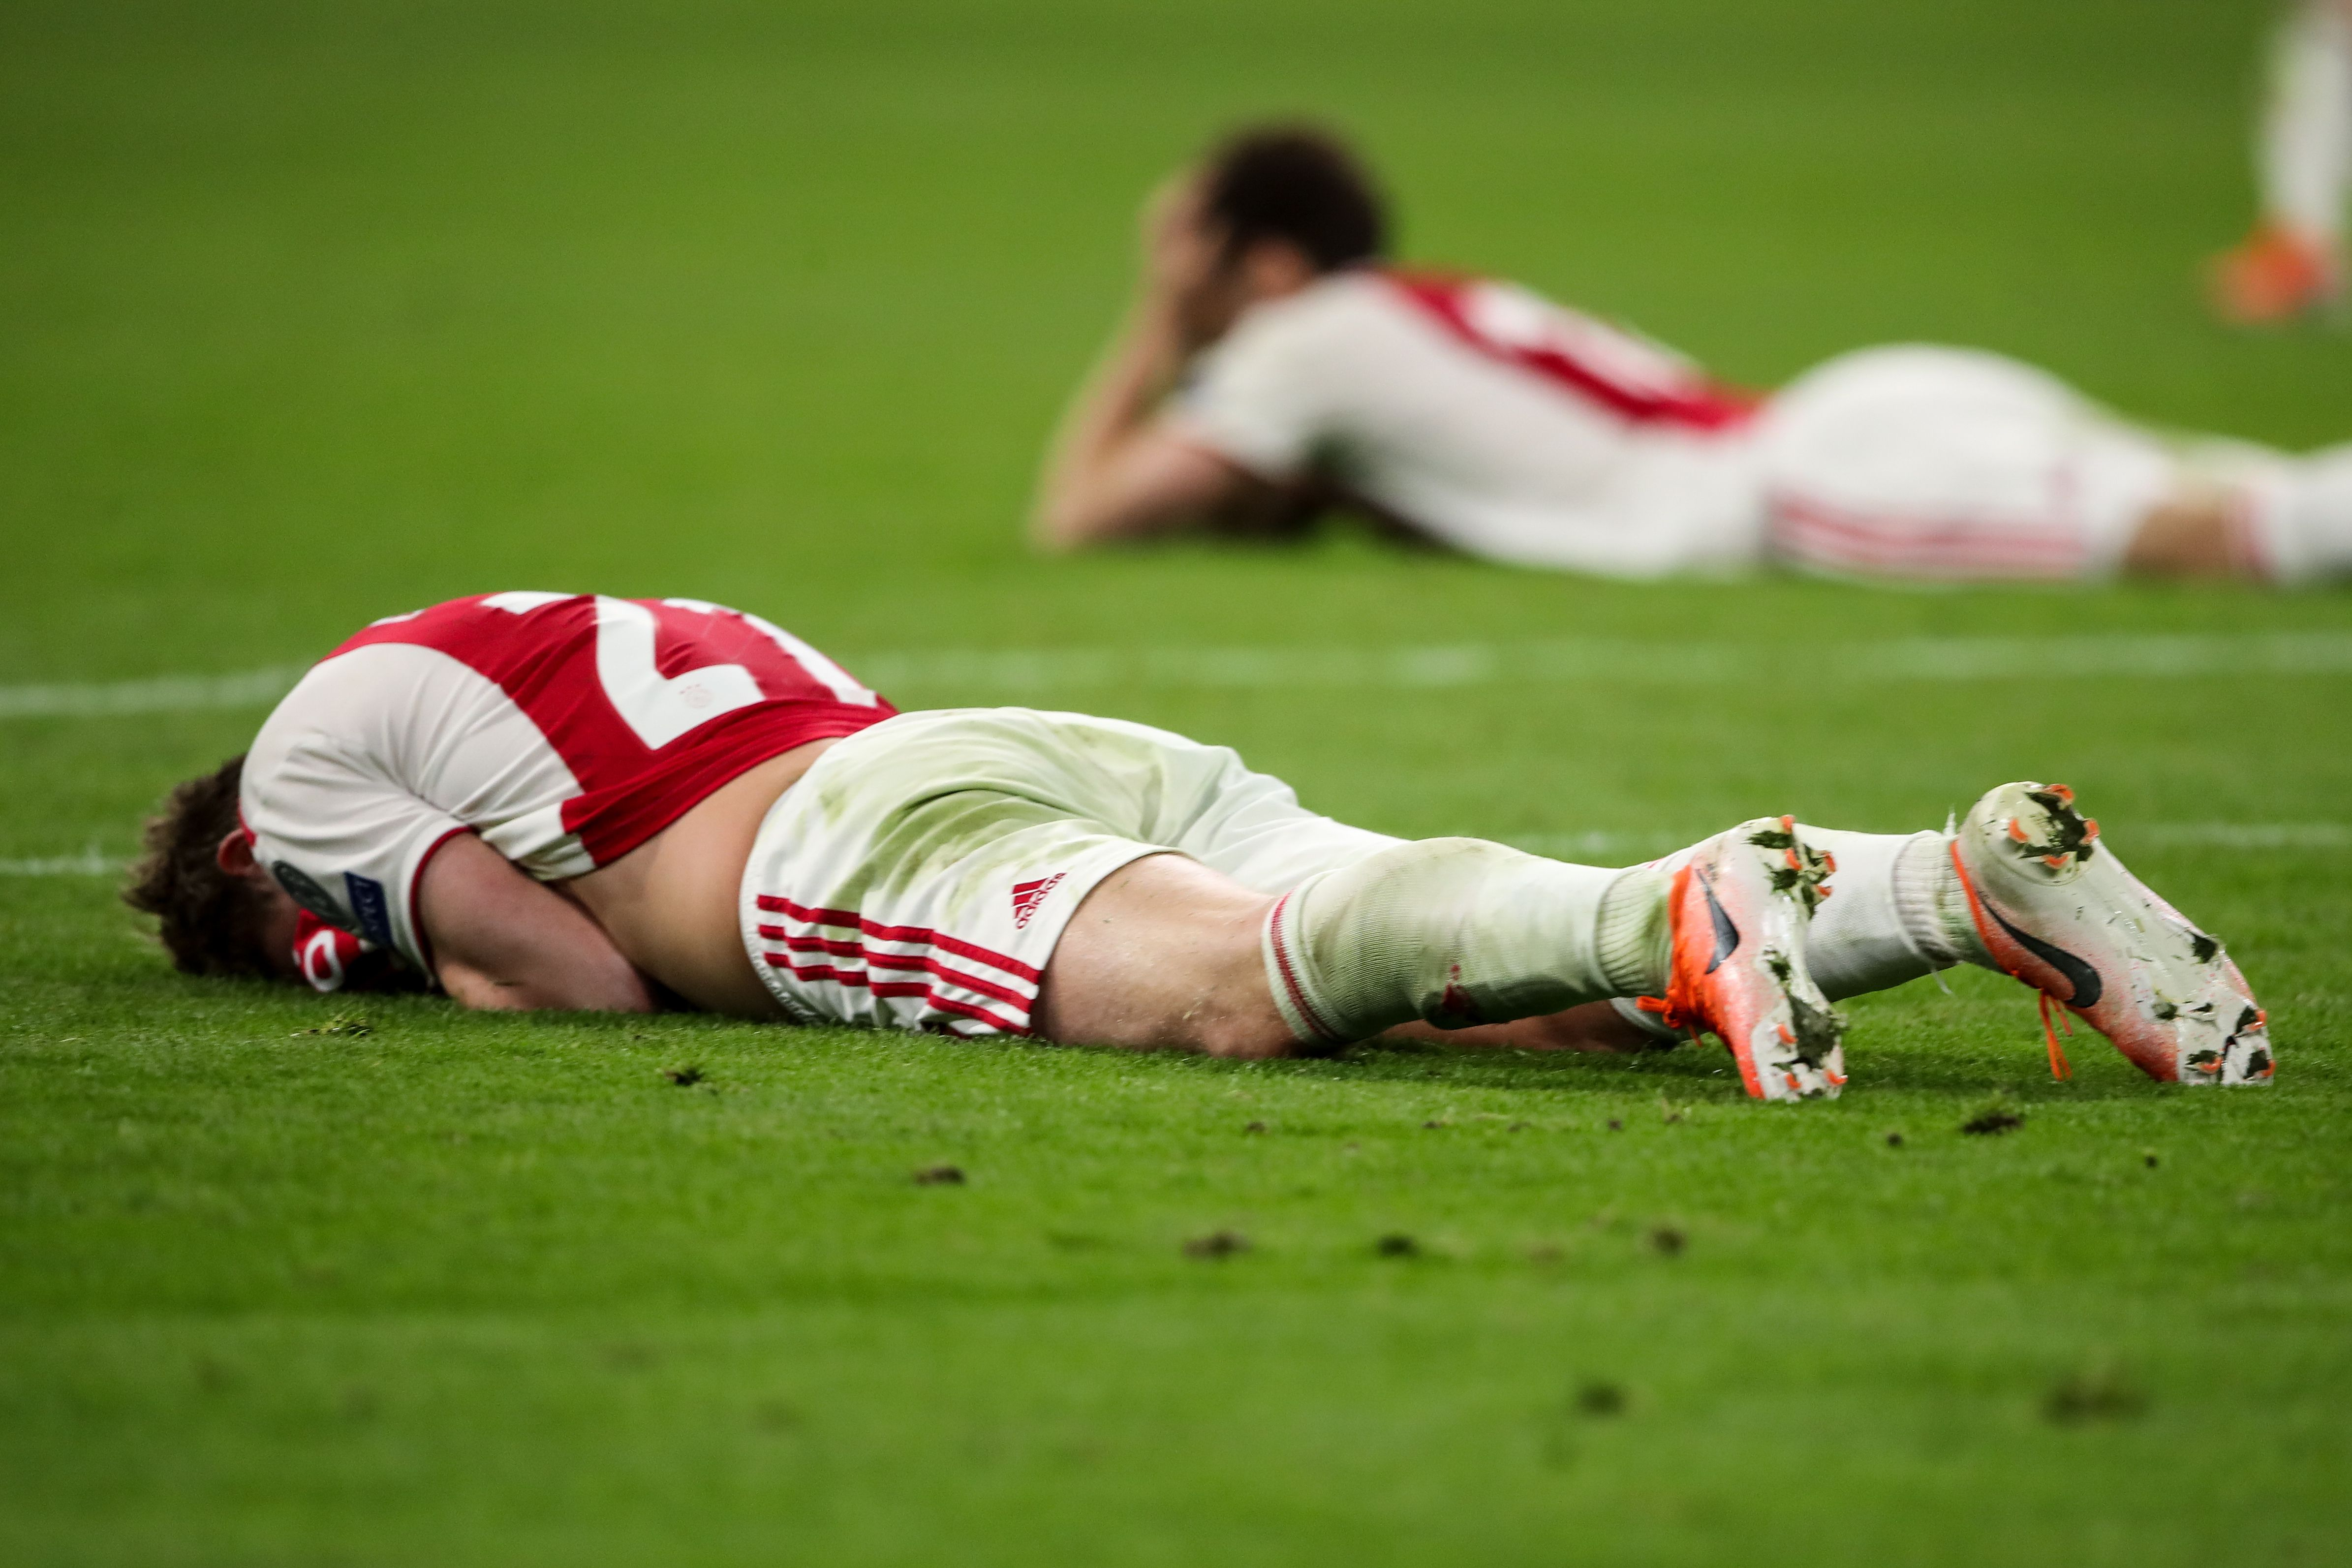 Ajax players lying on the pitch